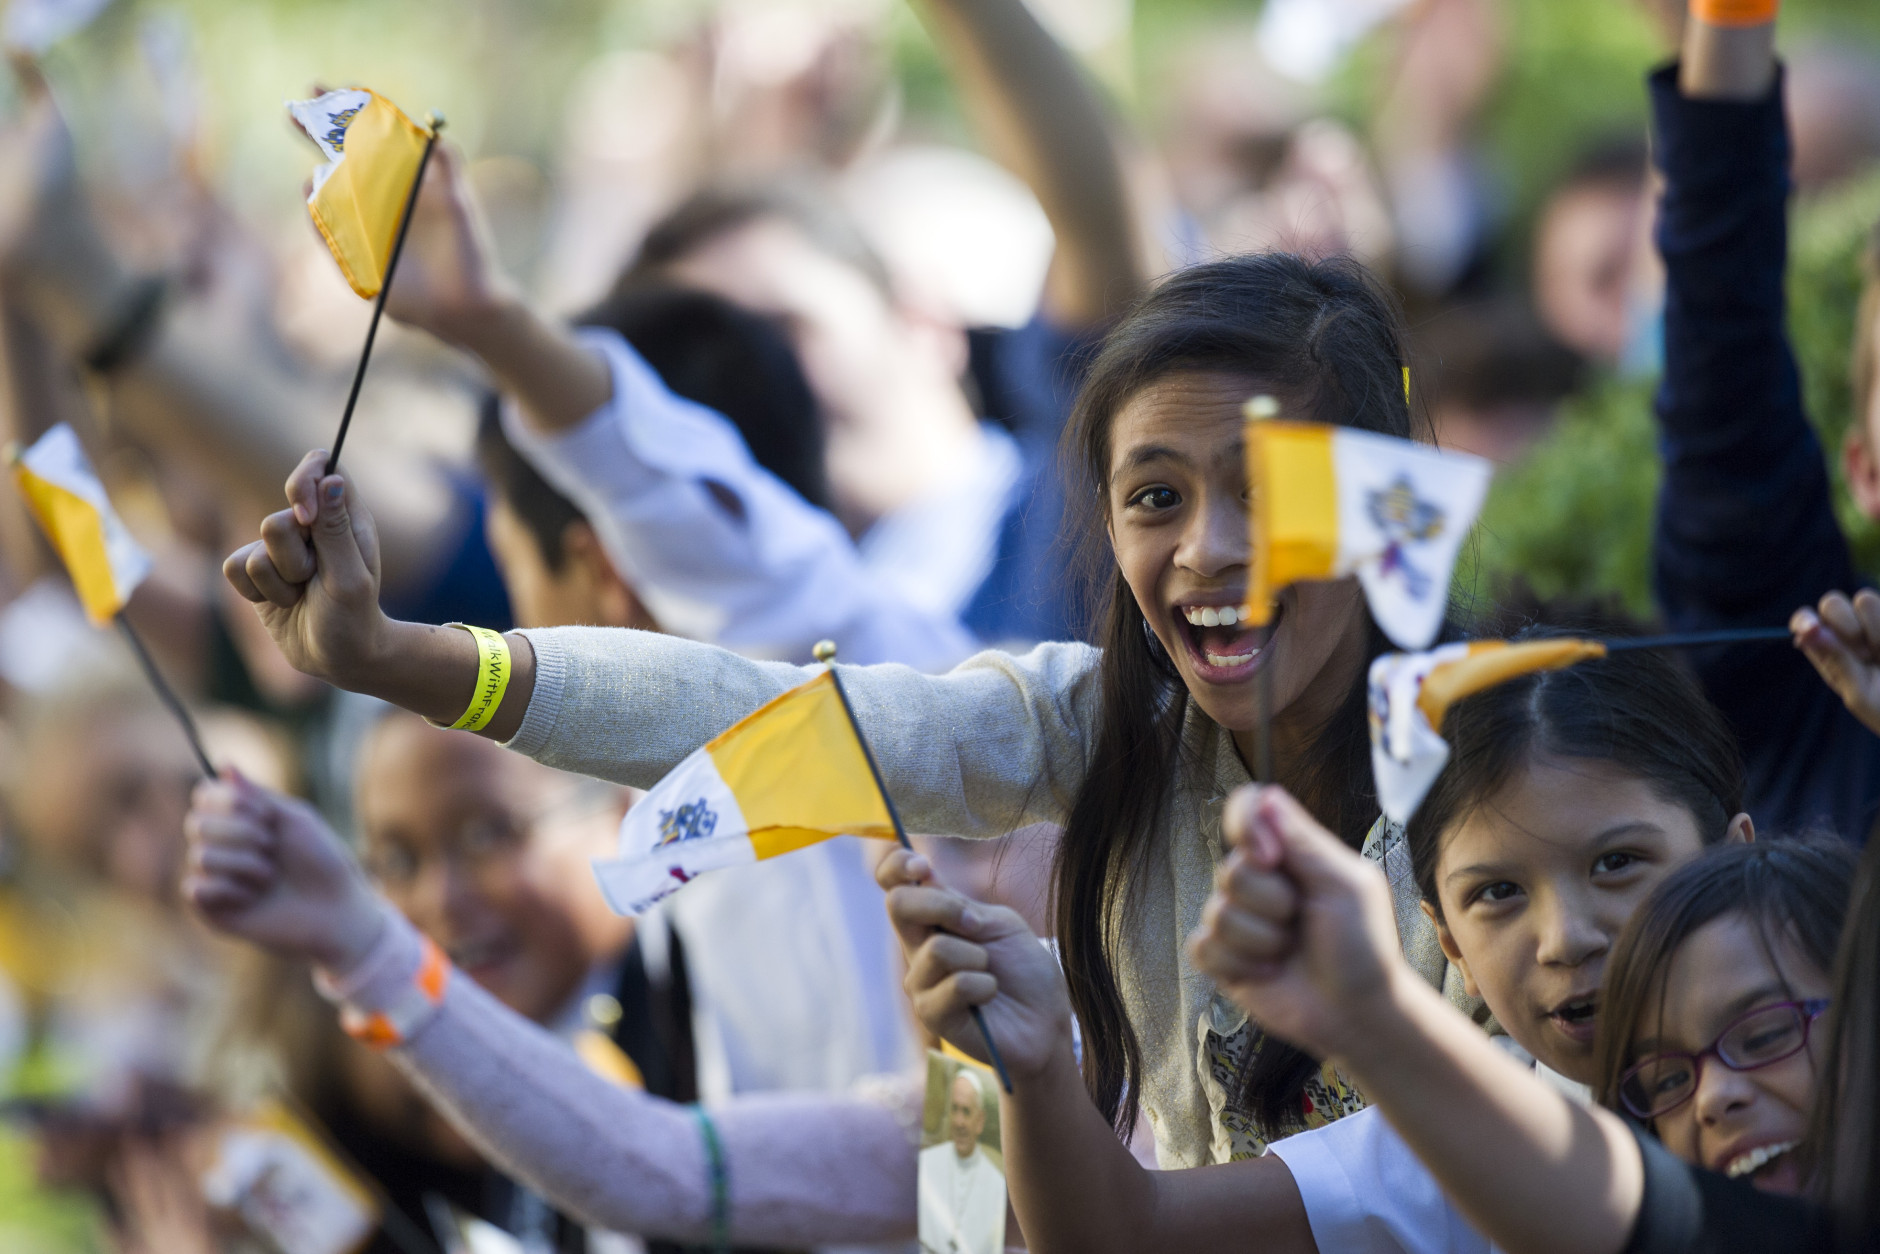 School girls wave Papal flag as Pope Francis' motorcade arrives at the Apostolic Nunciature, the Vatican's diplomatic mission in Washington, Wednesday, Sept. 23, 2015.  (AP Photo/Cliff Owen)